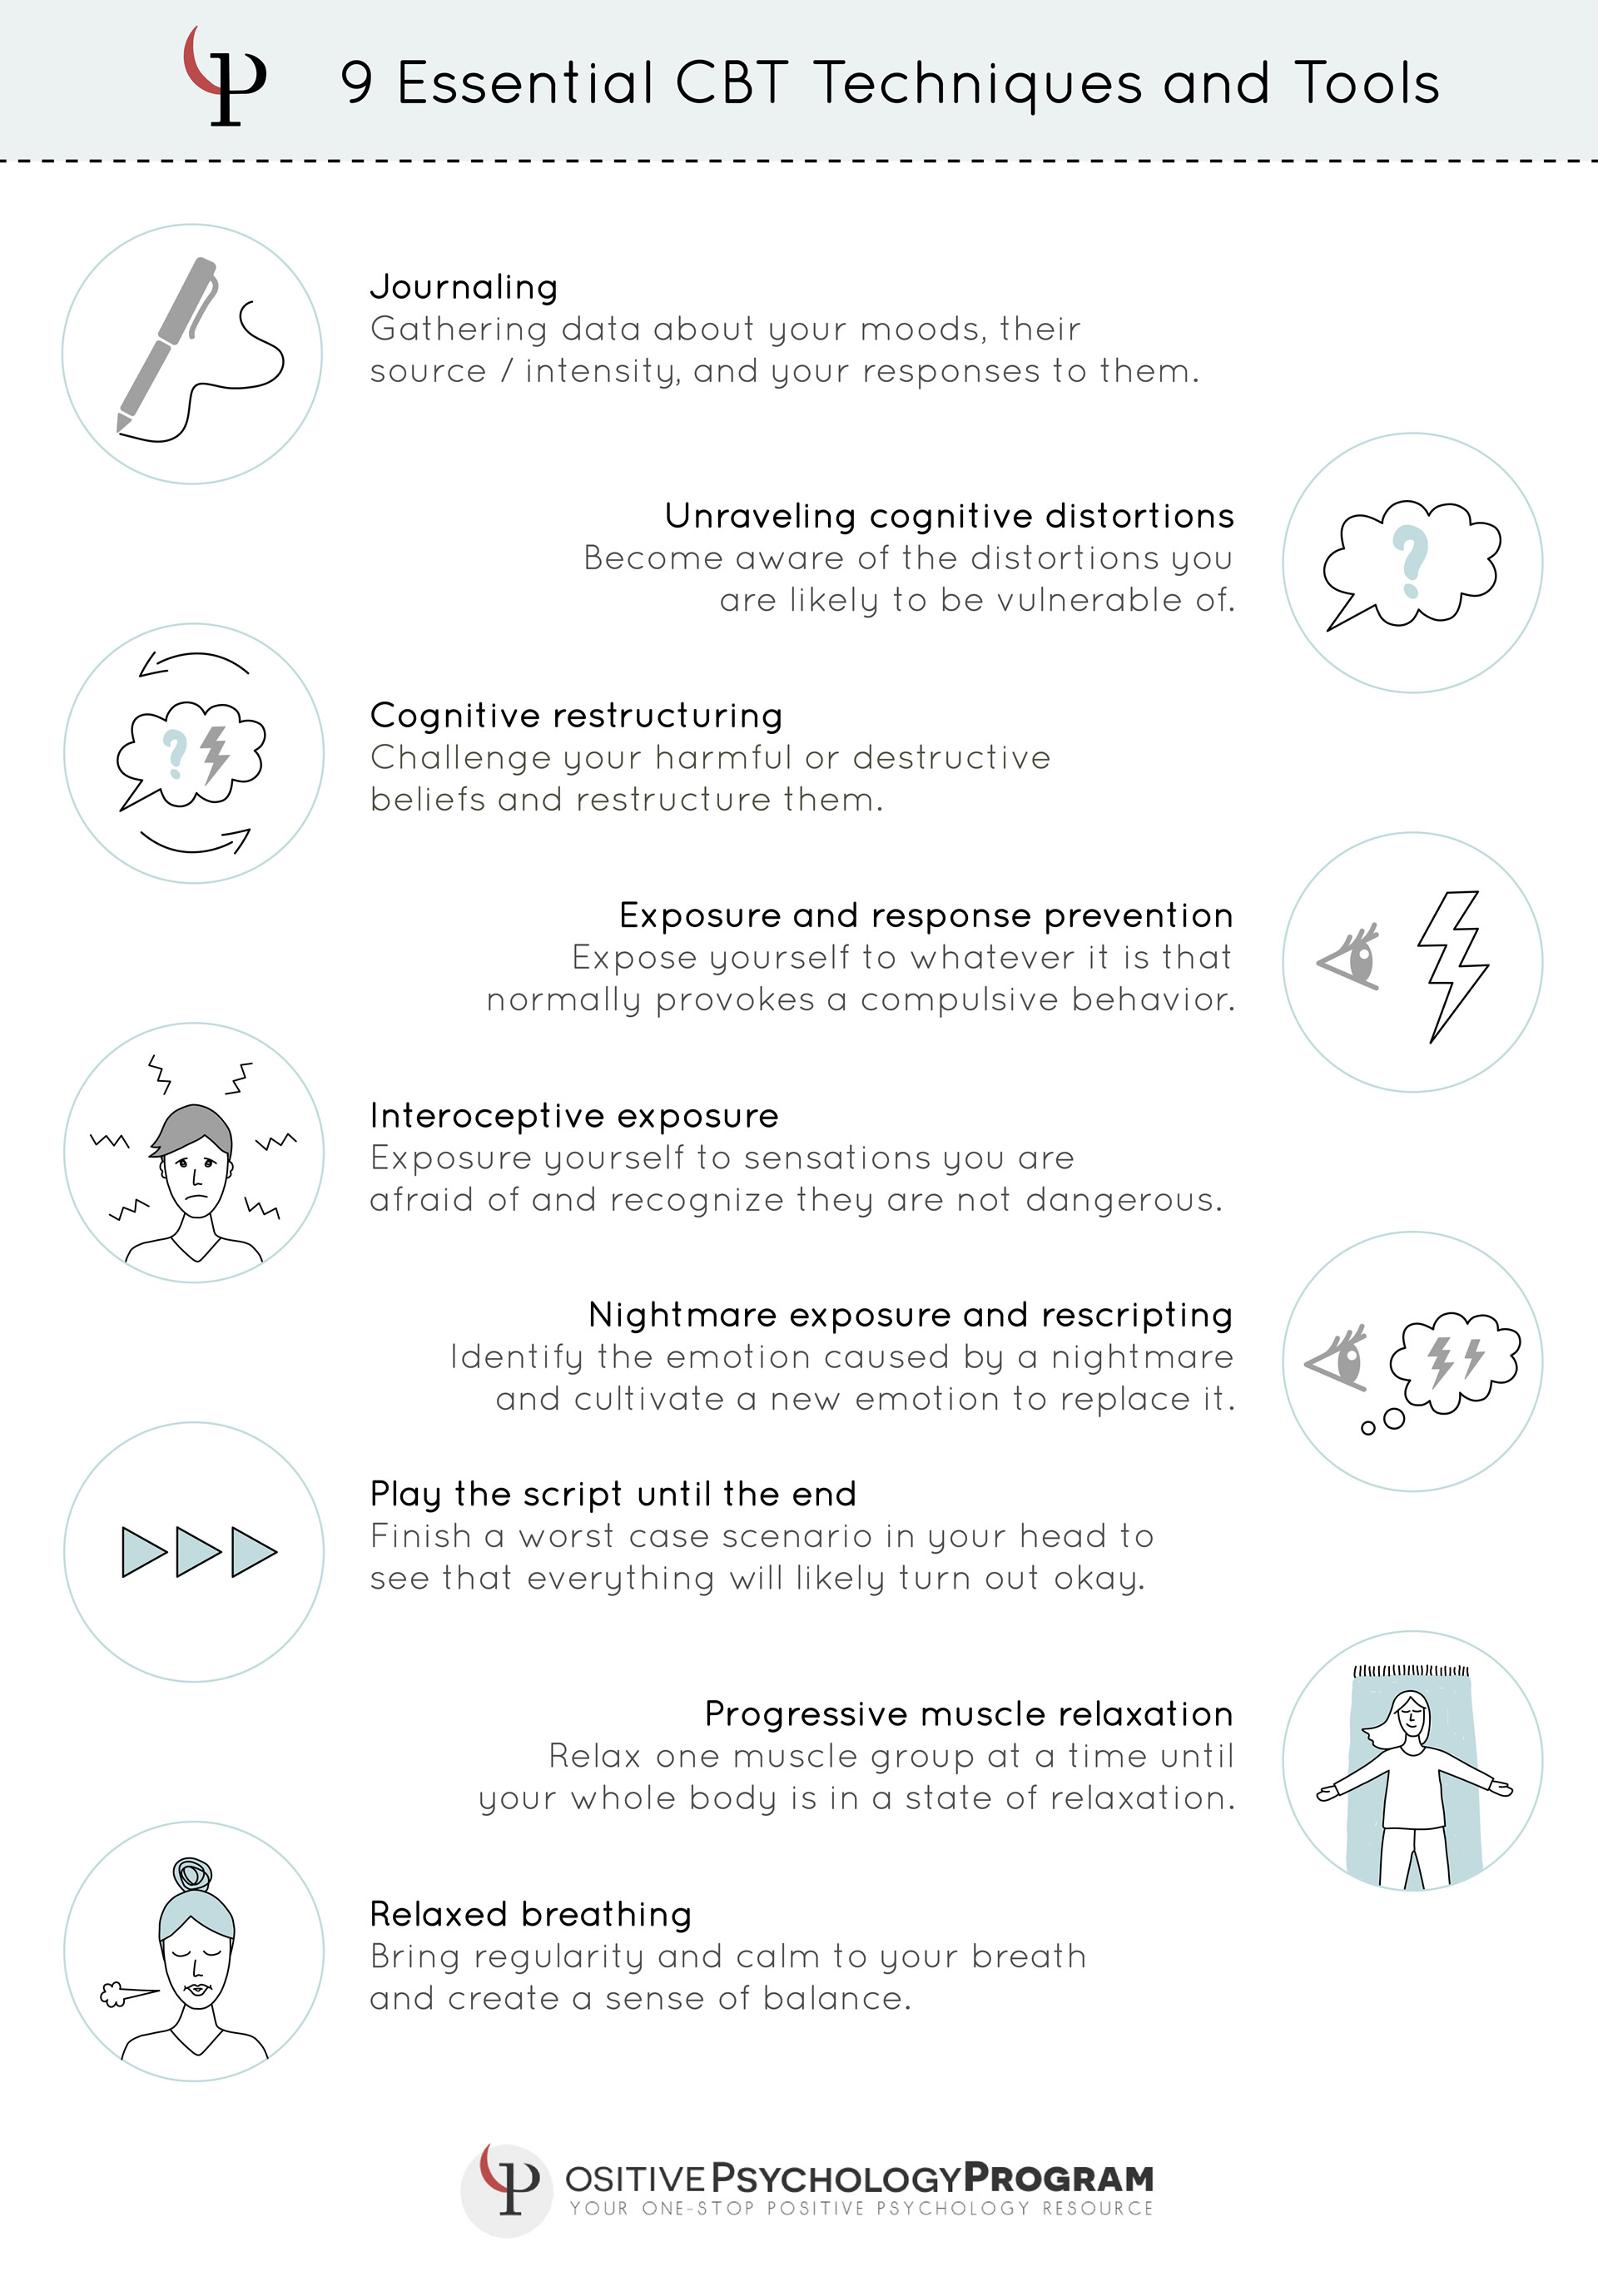 25 Cbt Techniques And Worksheets For Cognitive Behavioral Therapy | Free Printable Counseling Worksheets